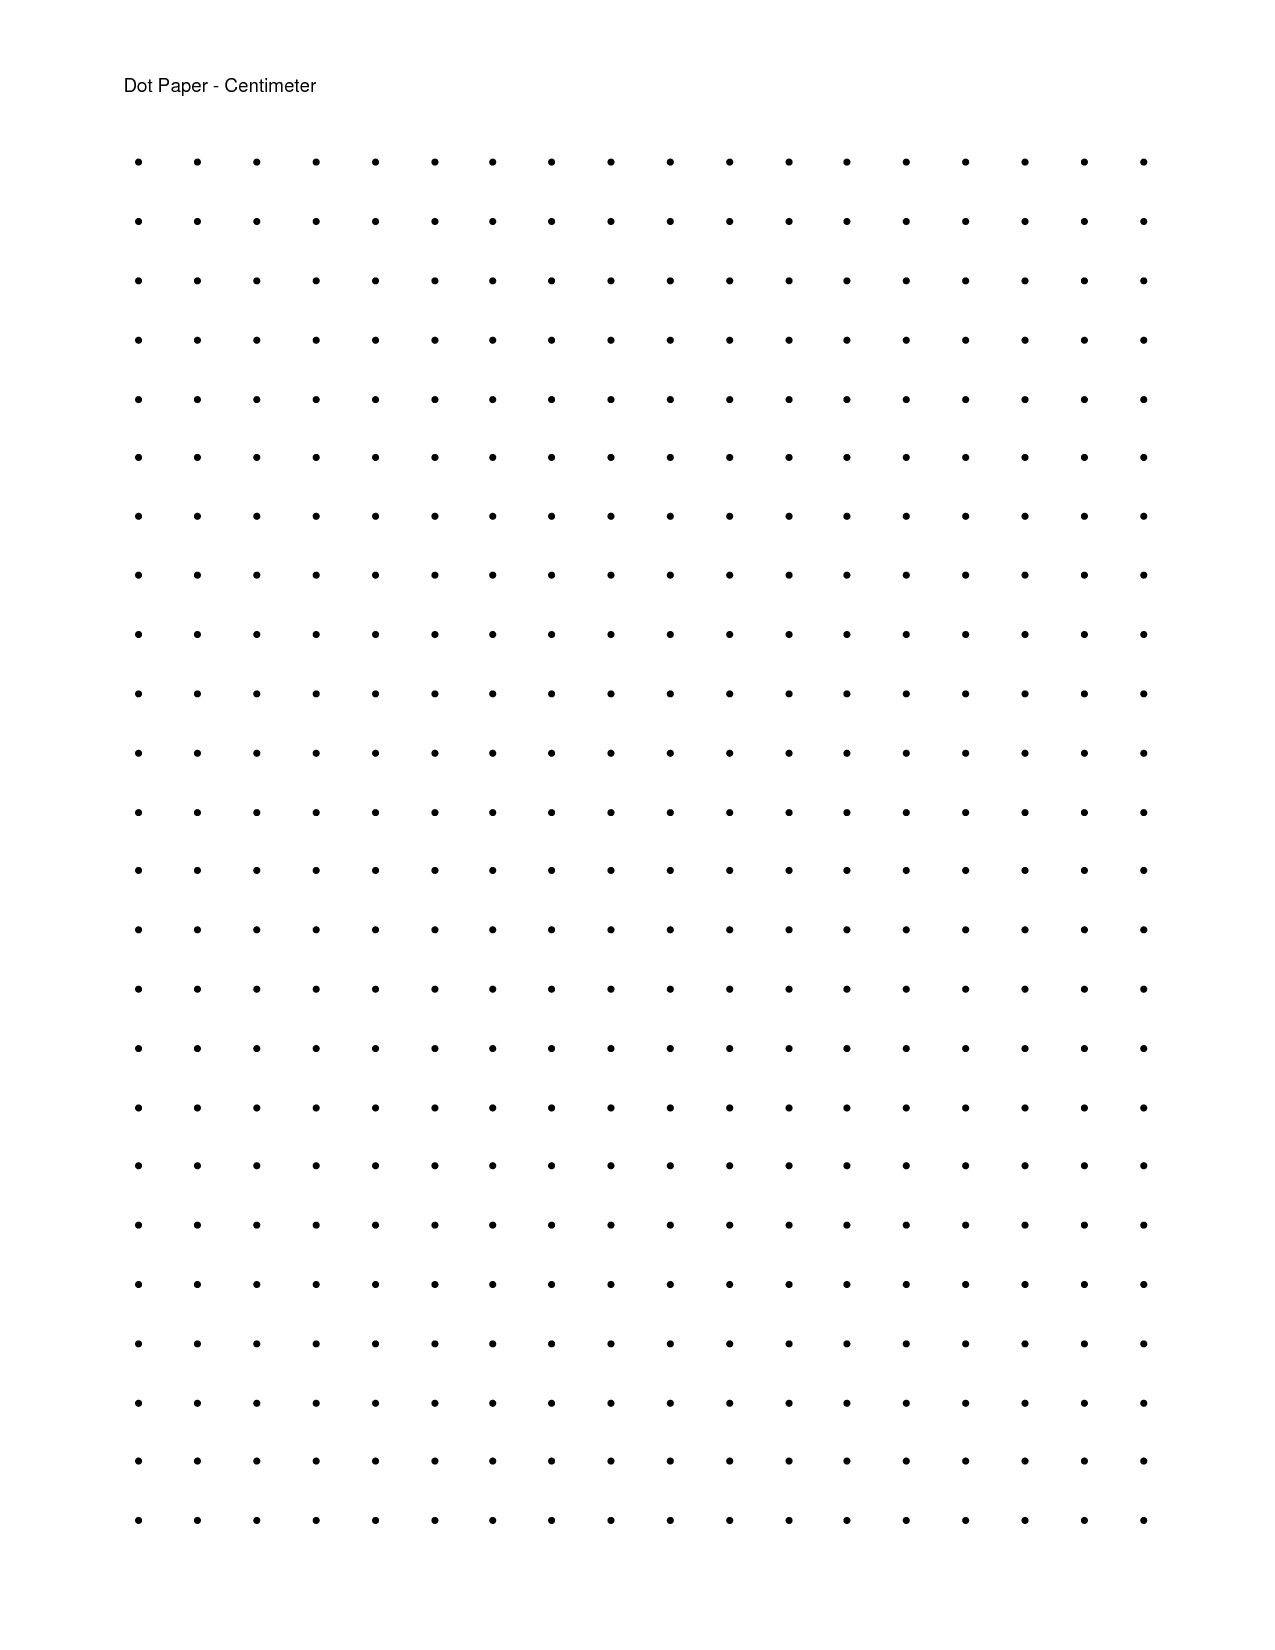 This is an image of Old Fashioned Dot Paper Printable